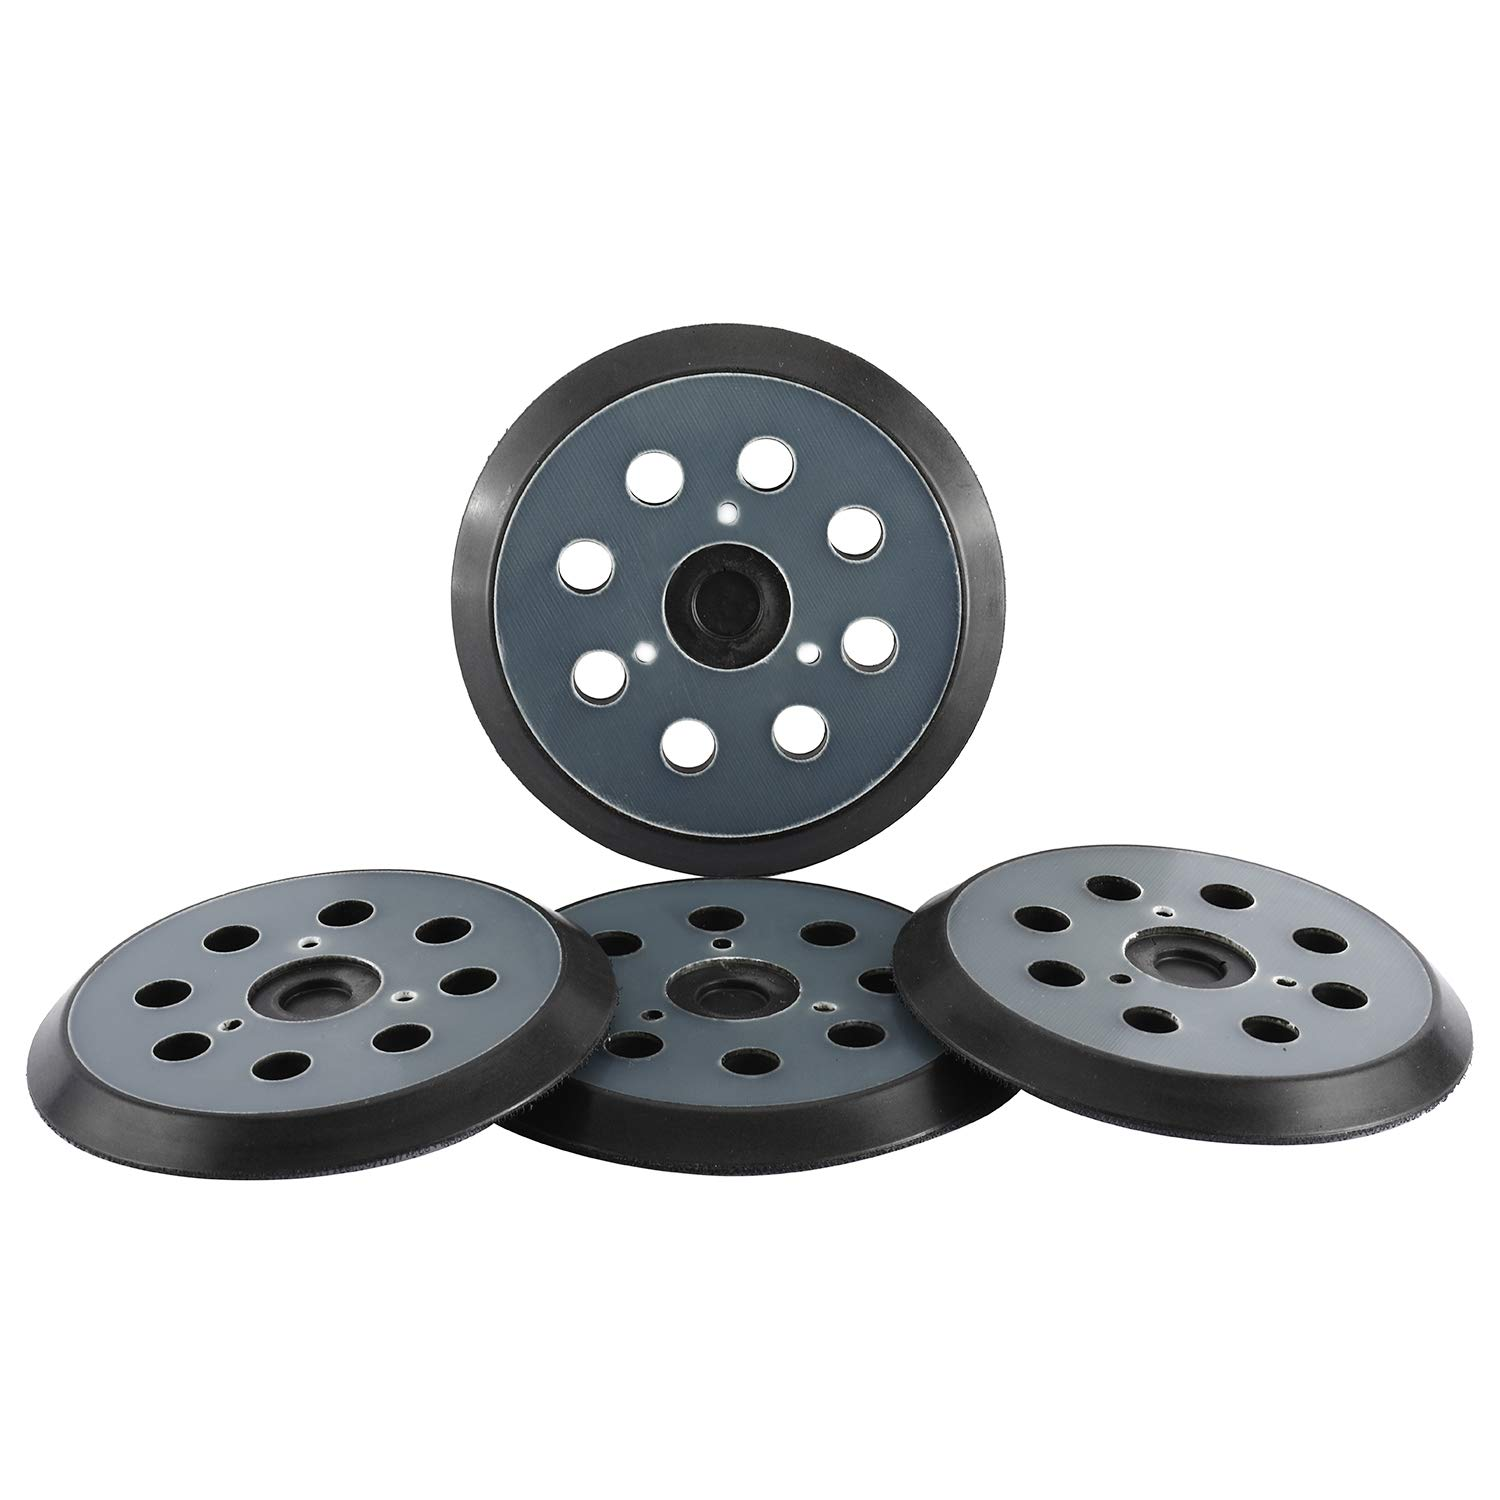 """YaeCCC 4 Pack 5"""" inch 8 Hole Replacement Sander Pads, Hook and Loop Sanding Backing Plates for Makita 743081-8 743051-7, DeWalt 151281-08 DW4388, Porter Cable, Hitachi 324-209 etc"""